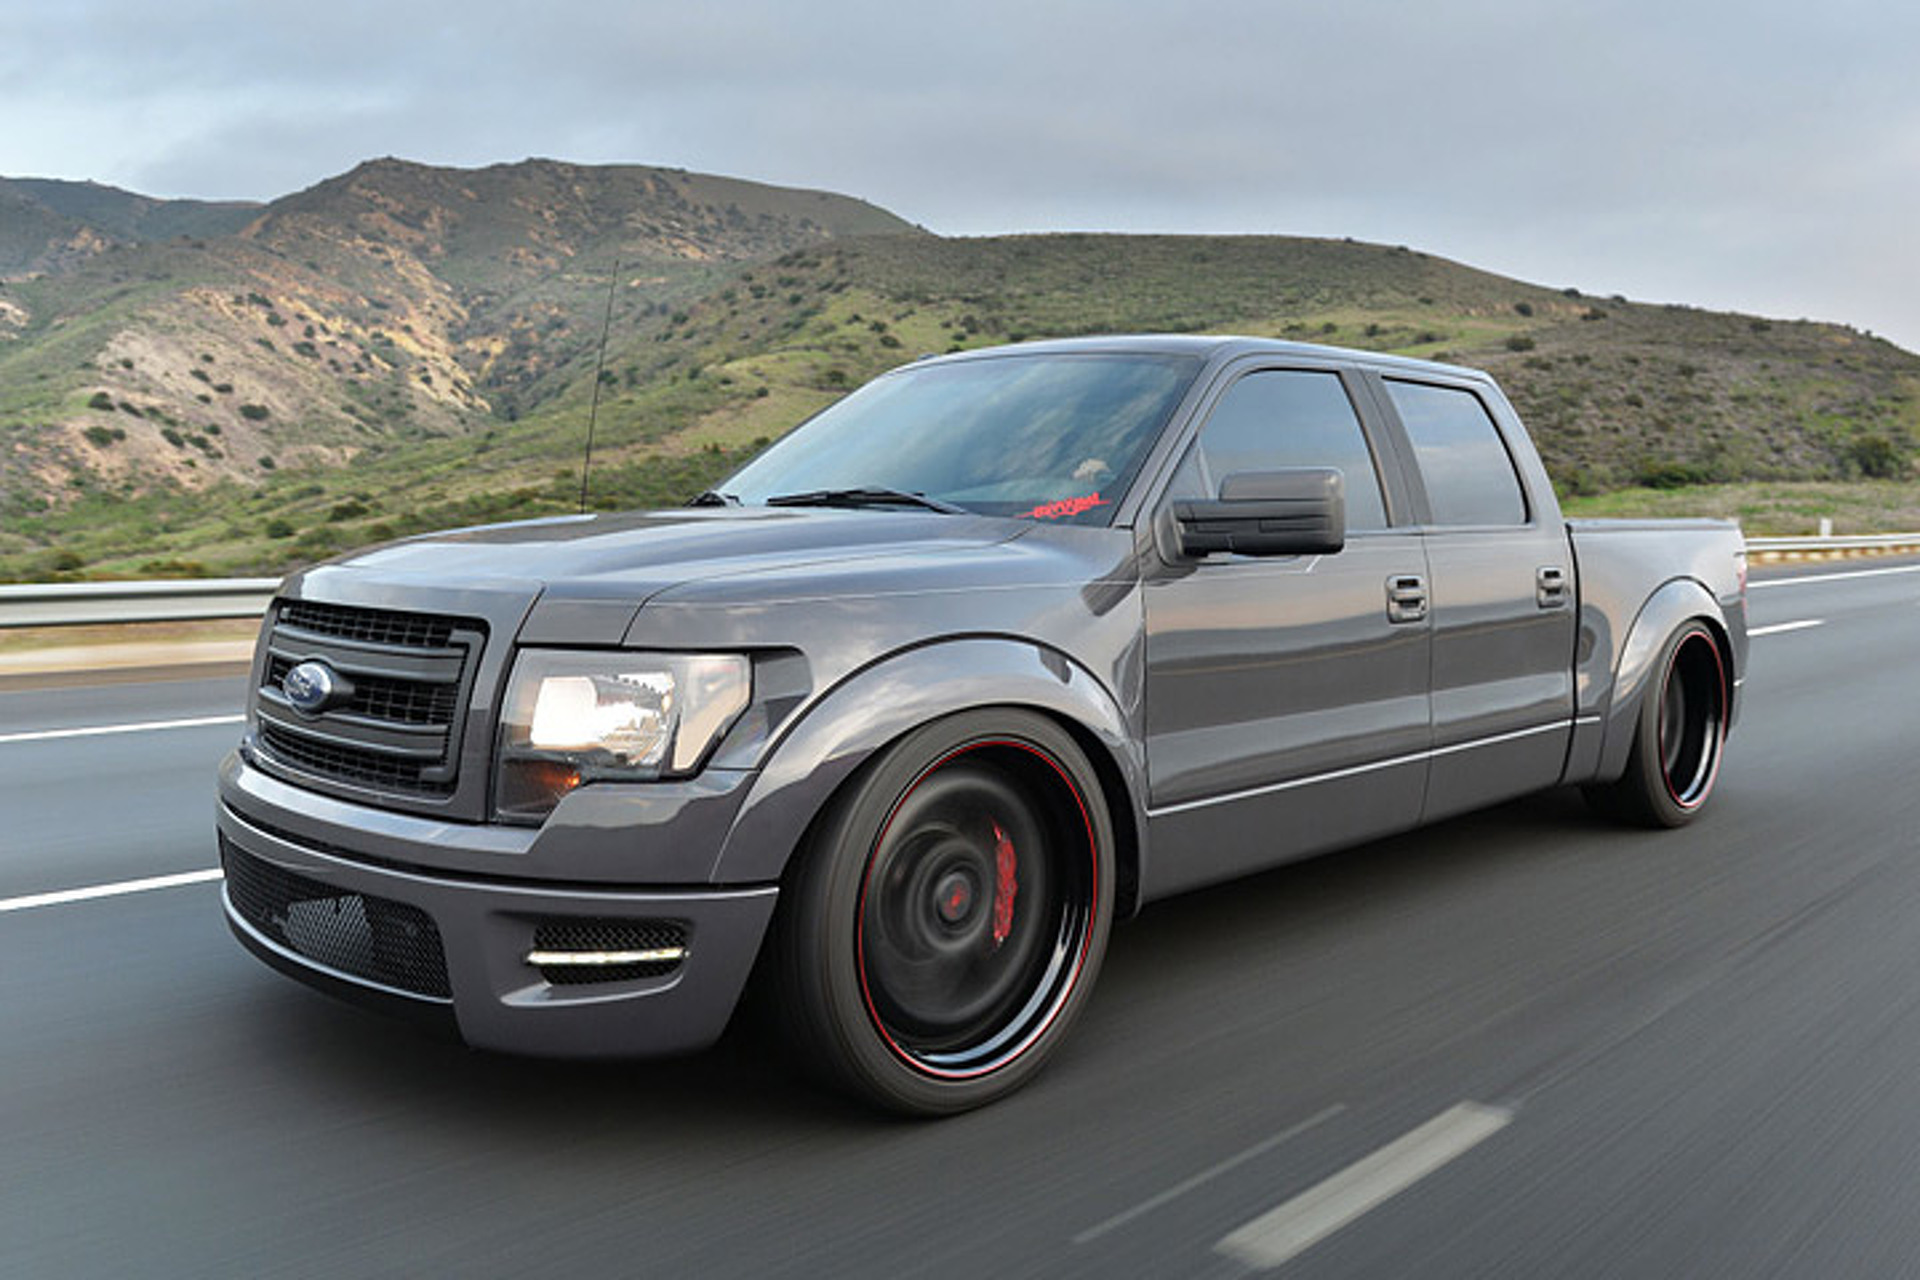 Slammed Ford F-150 Proves Altitude Isn't Everything